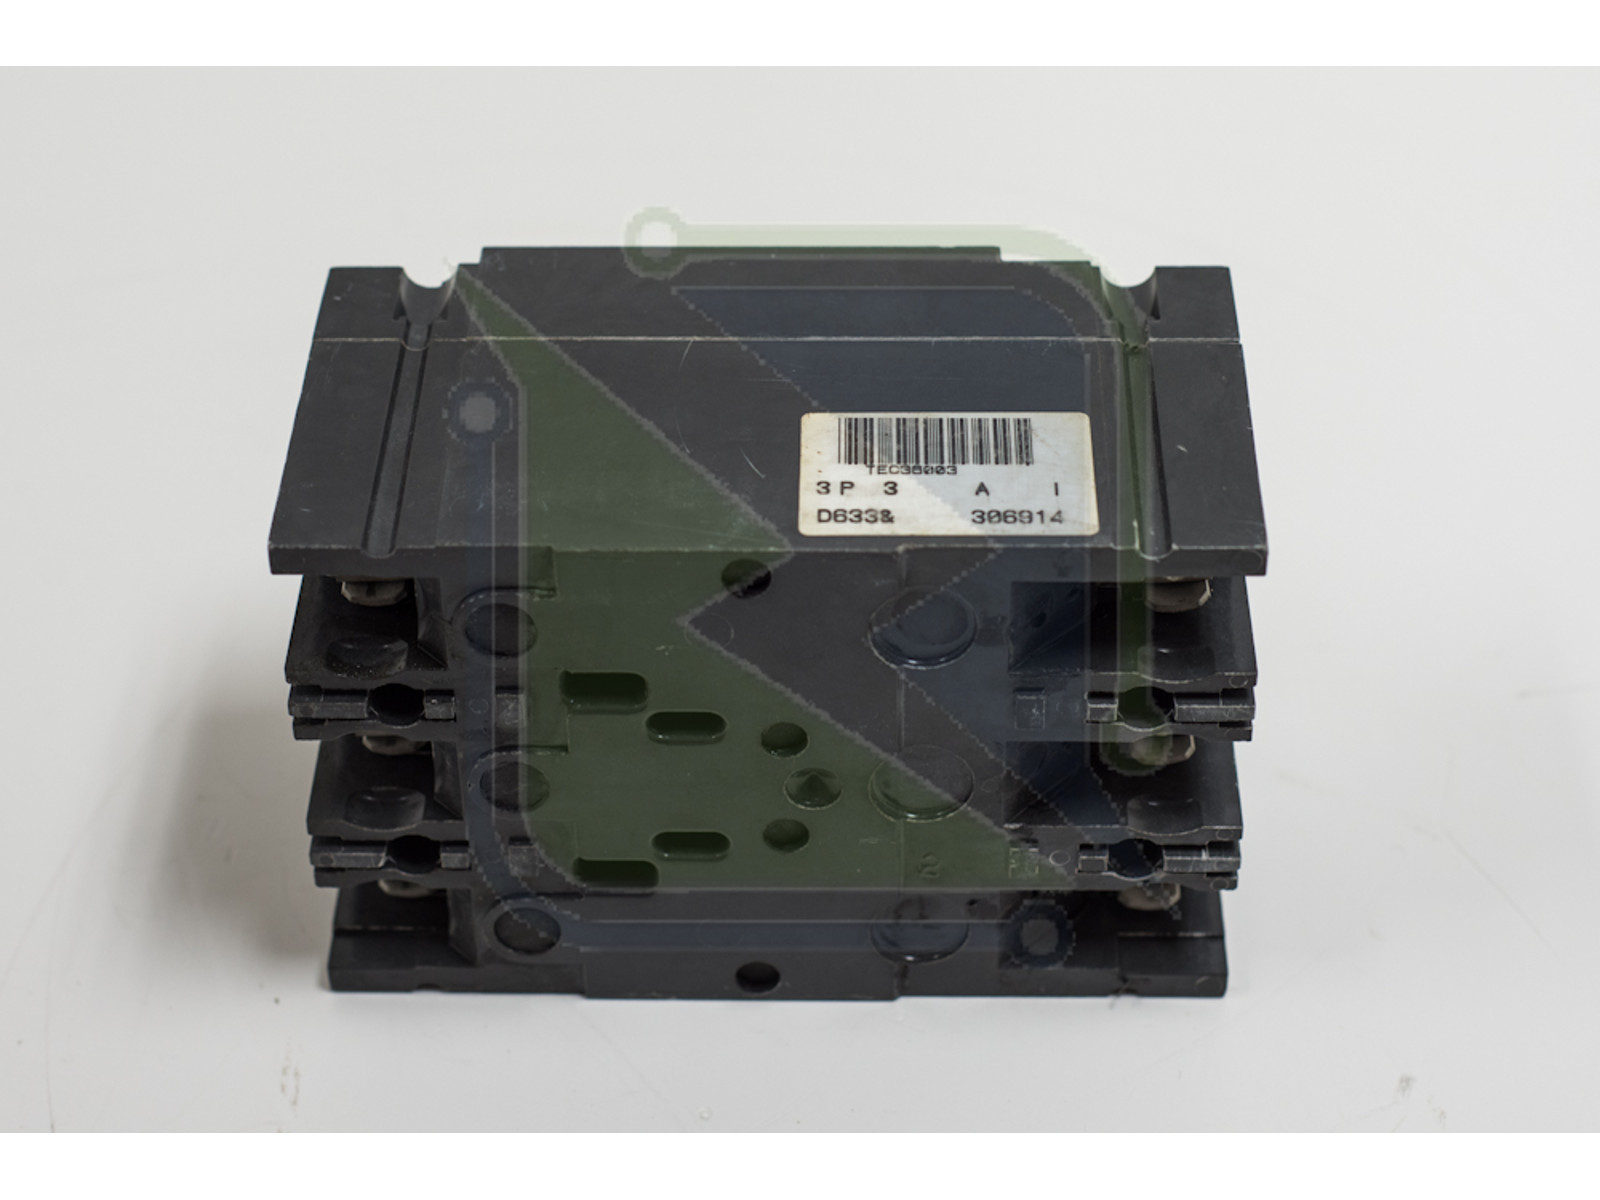 Tec36150 For 129500 General Electric Ge Obsolete Fuse Box Relectric Recommends Re Certified Plus